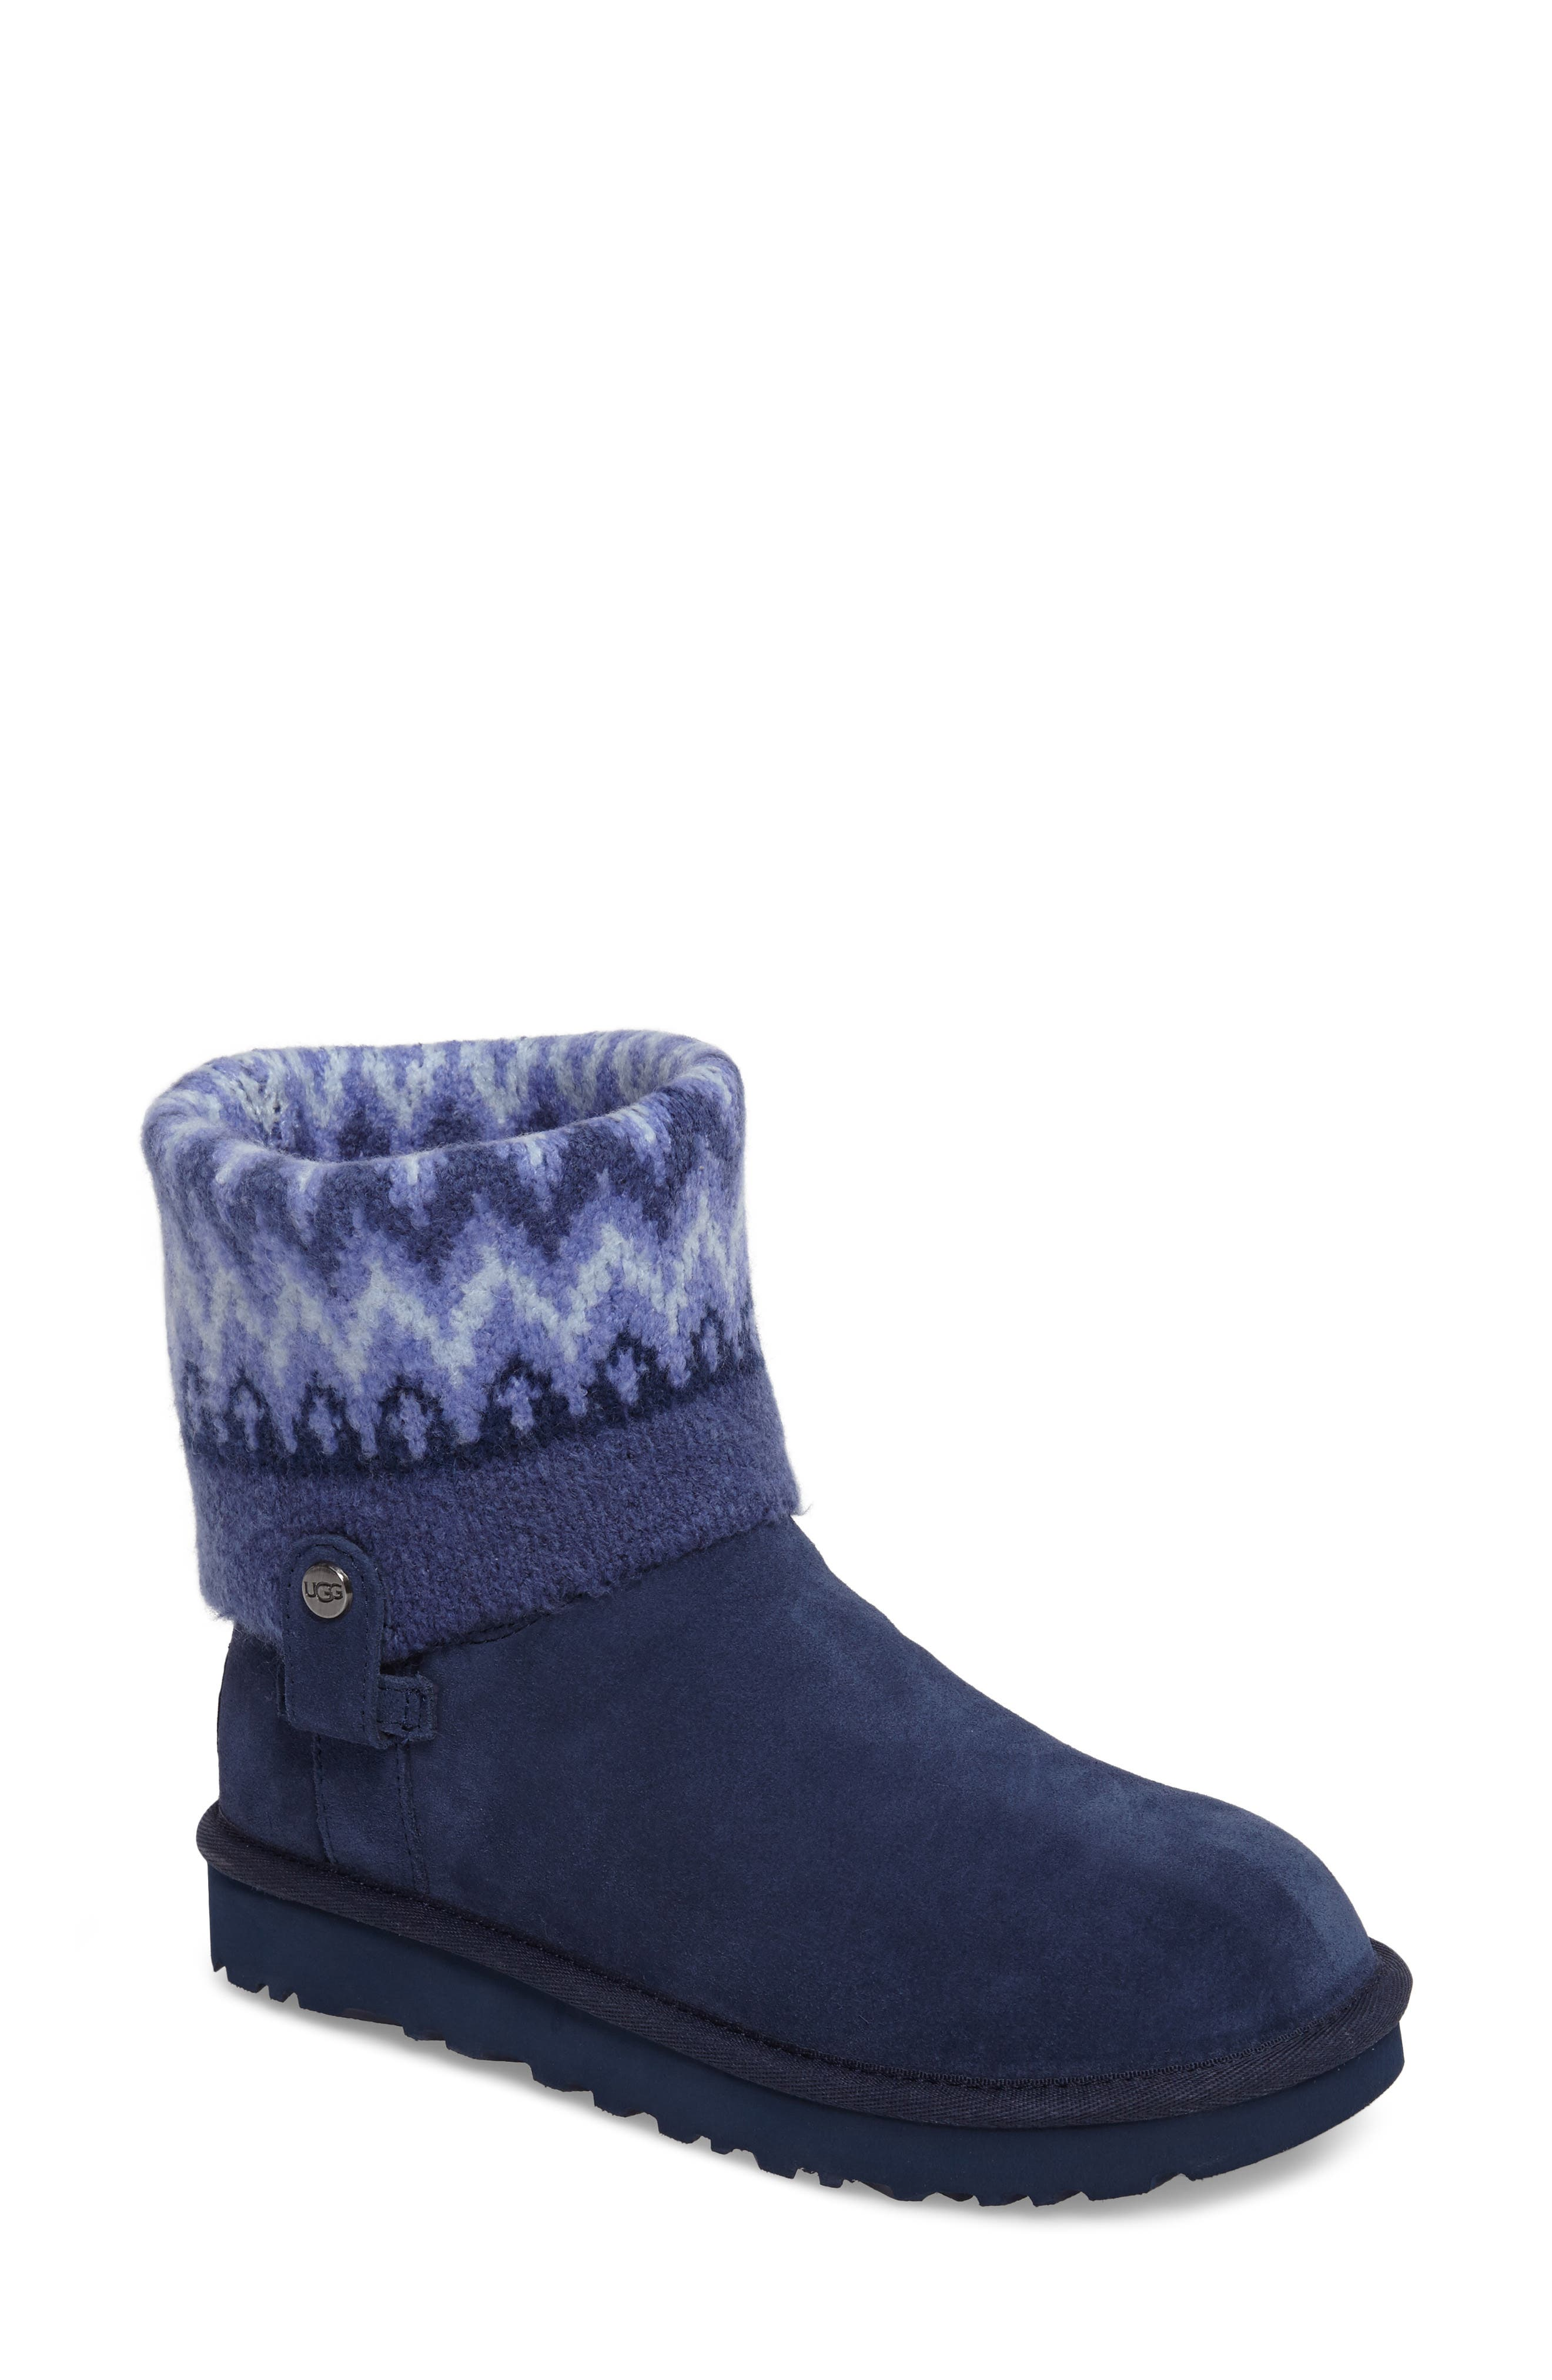 Saela Icelandic Boot,                             Main thumbnail 1, color,                             Navy Suede